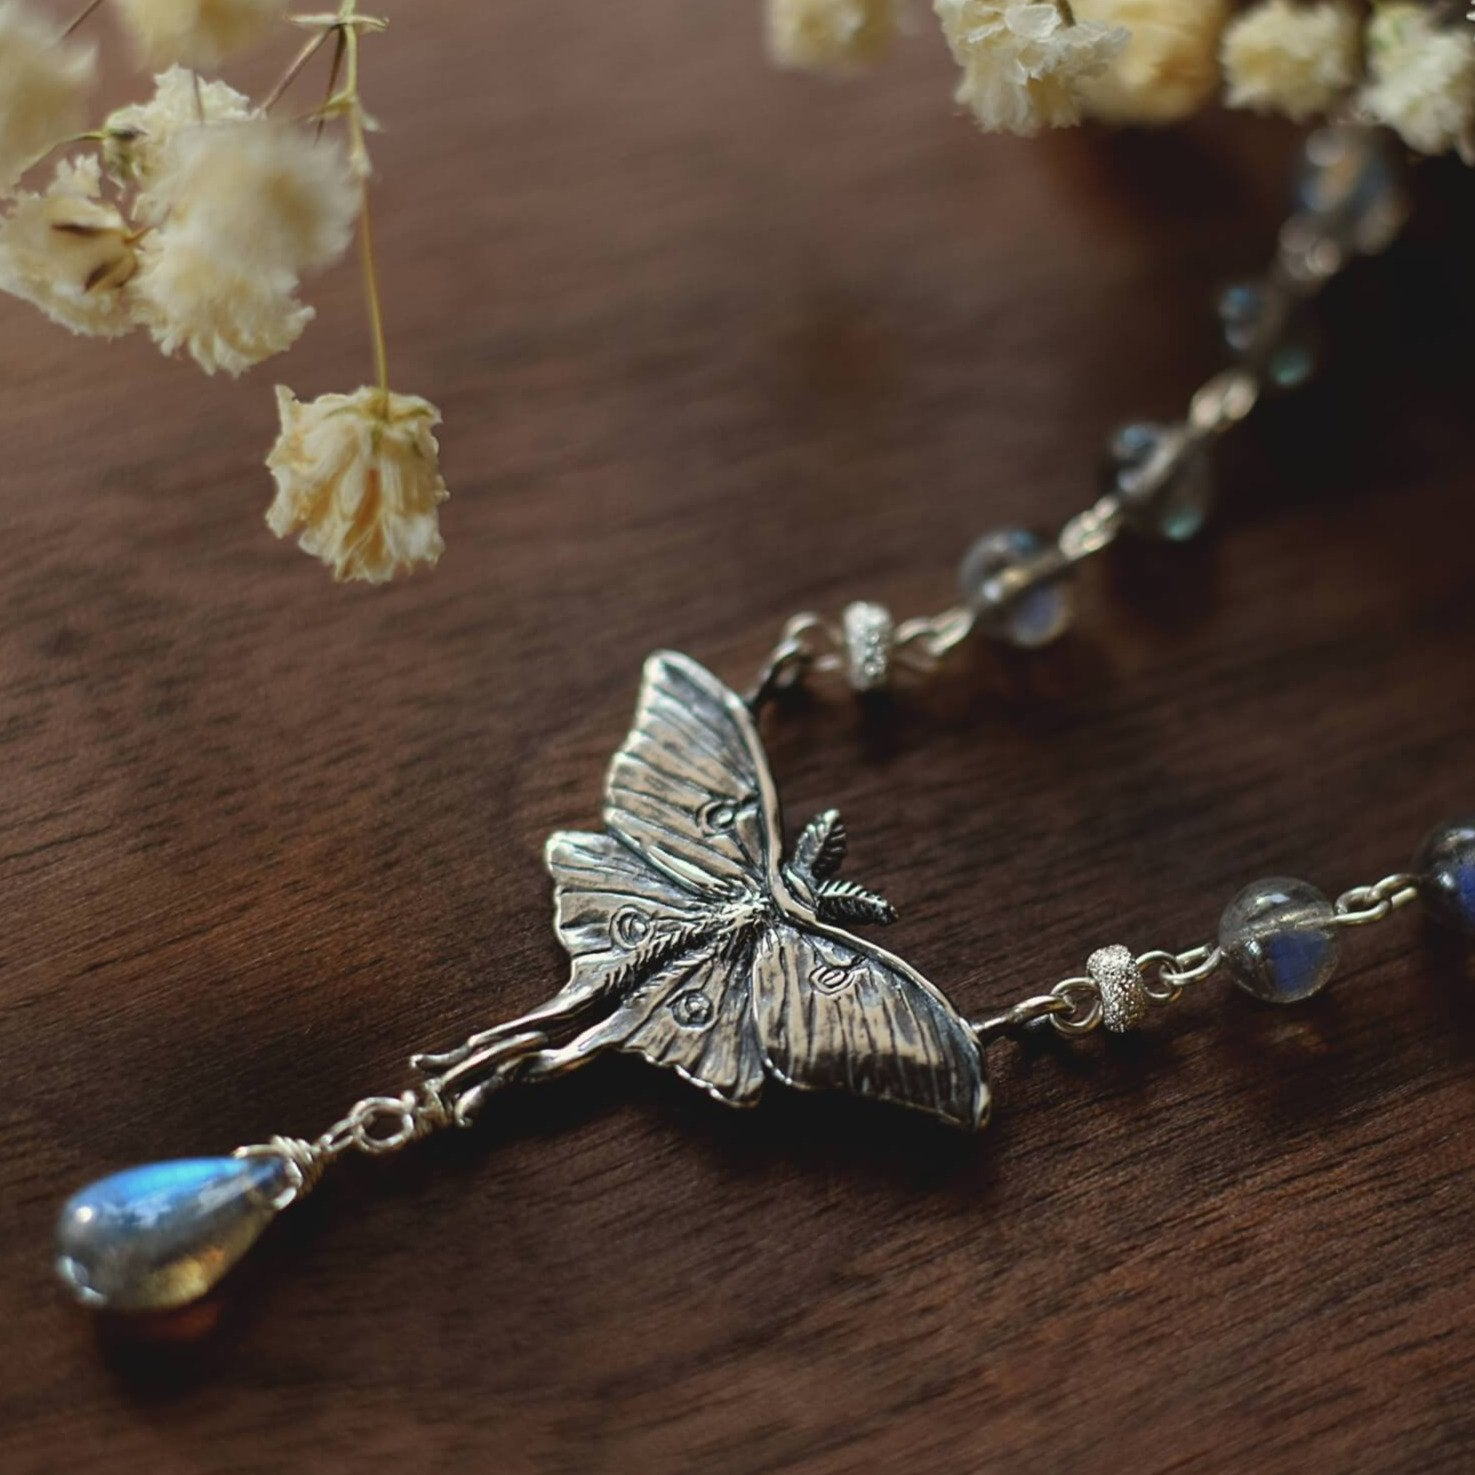 Luna Moth Necklace, Sterling Silver & Labradorite Gemstone Beads - Moon Moth Pendant, Recycled - Moth Lover Jewelry Gift by Woodland Belle